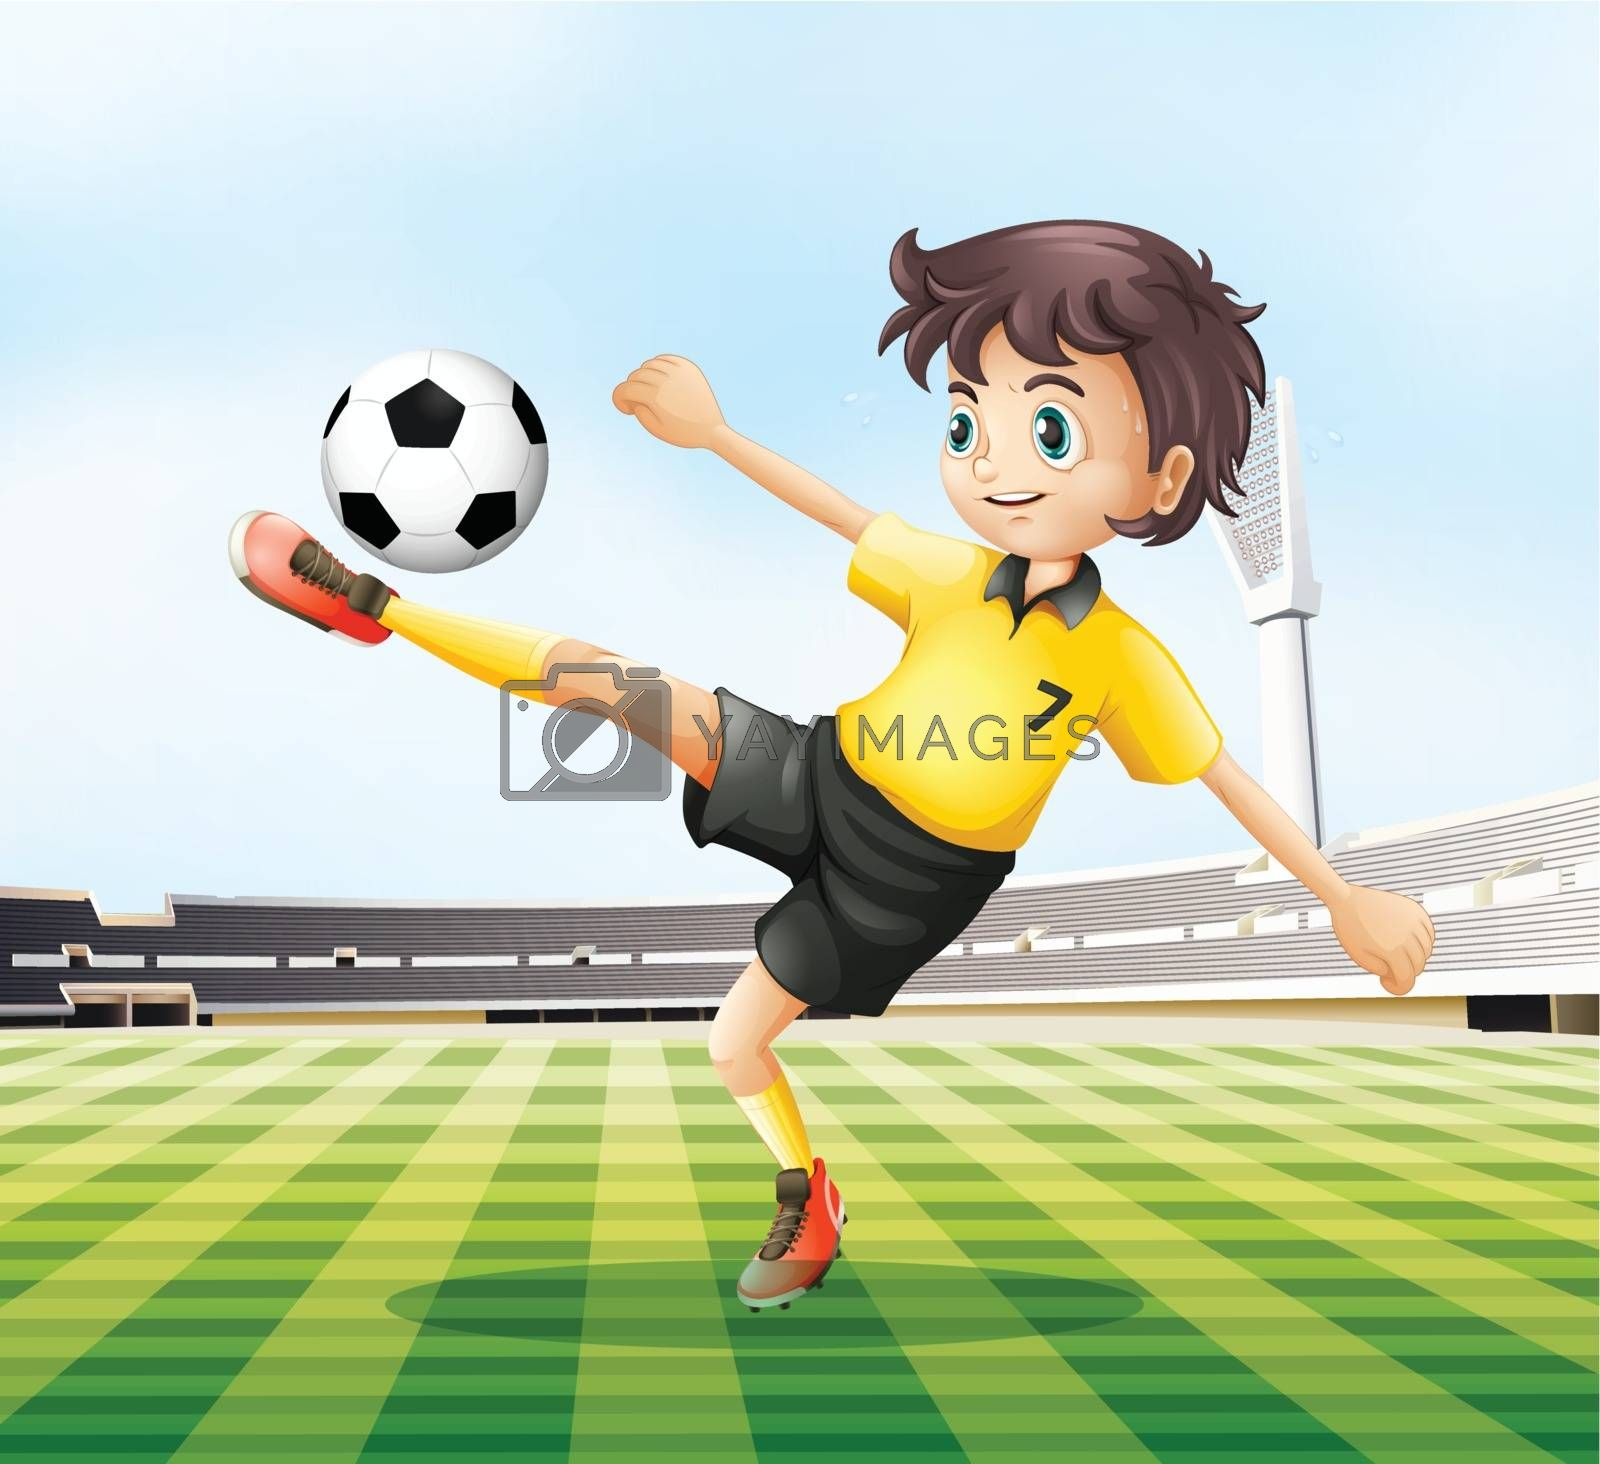 Illustration of a football player kicking the ball